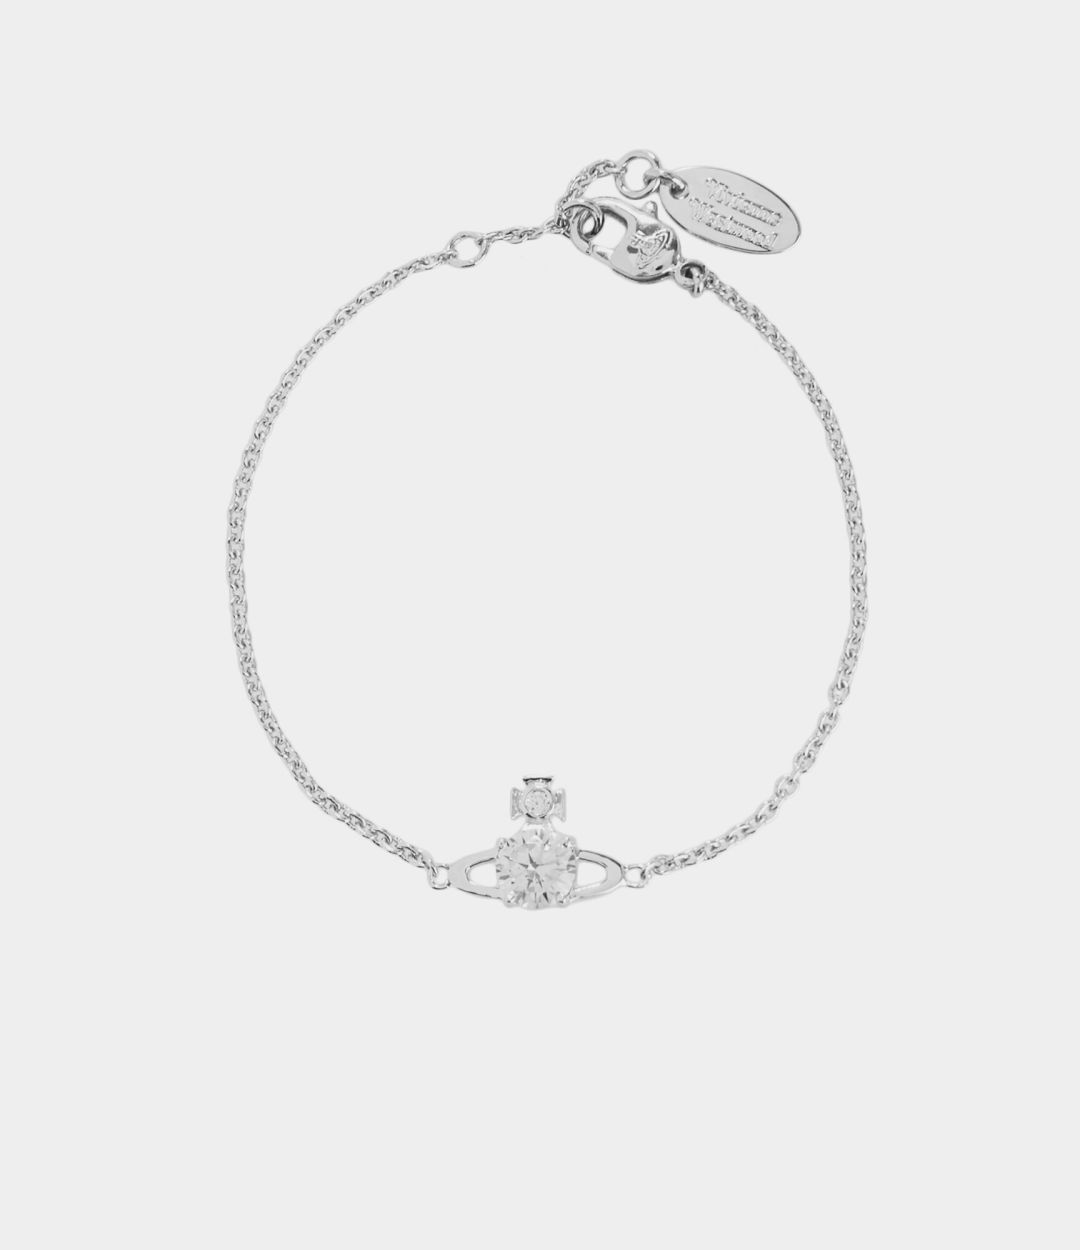 bedbe74921d2 Vivienne Westwood Reina Small Bracelet Silver 80